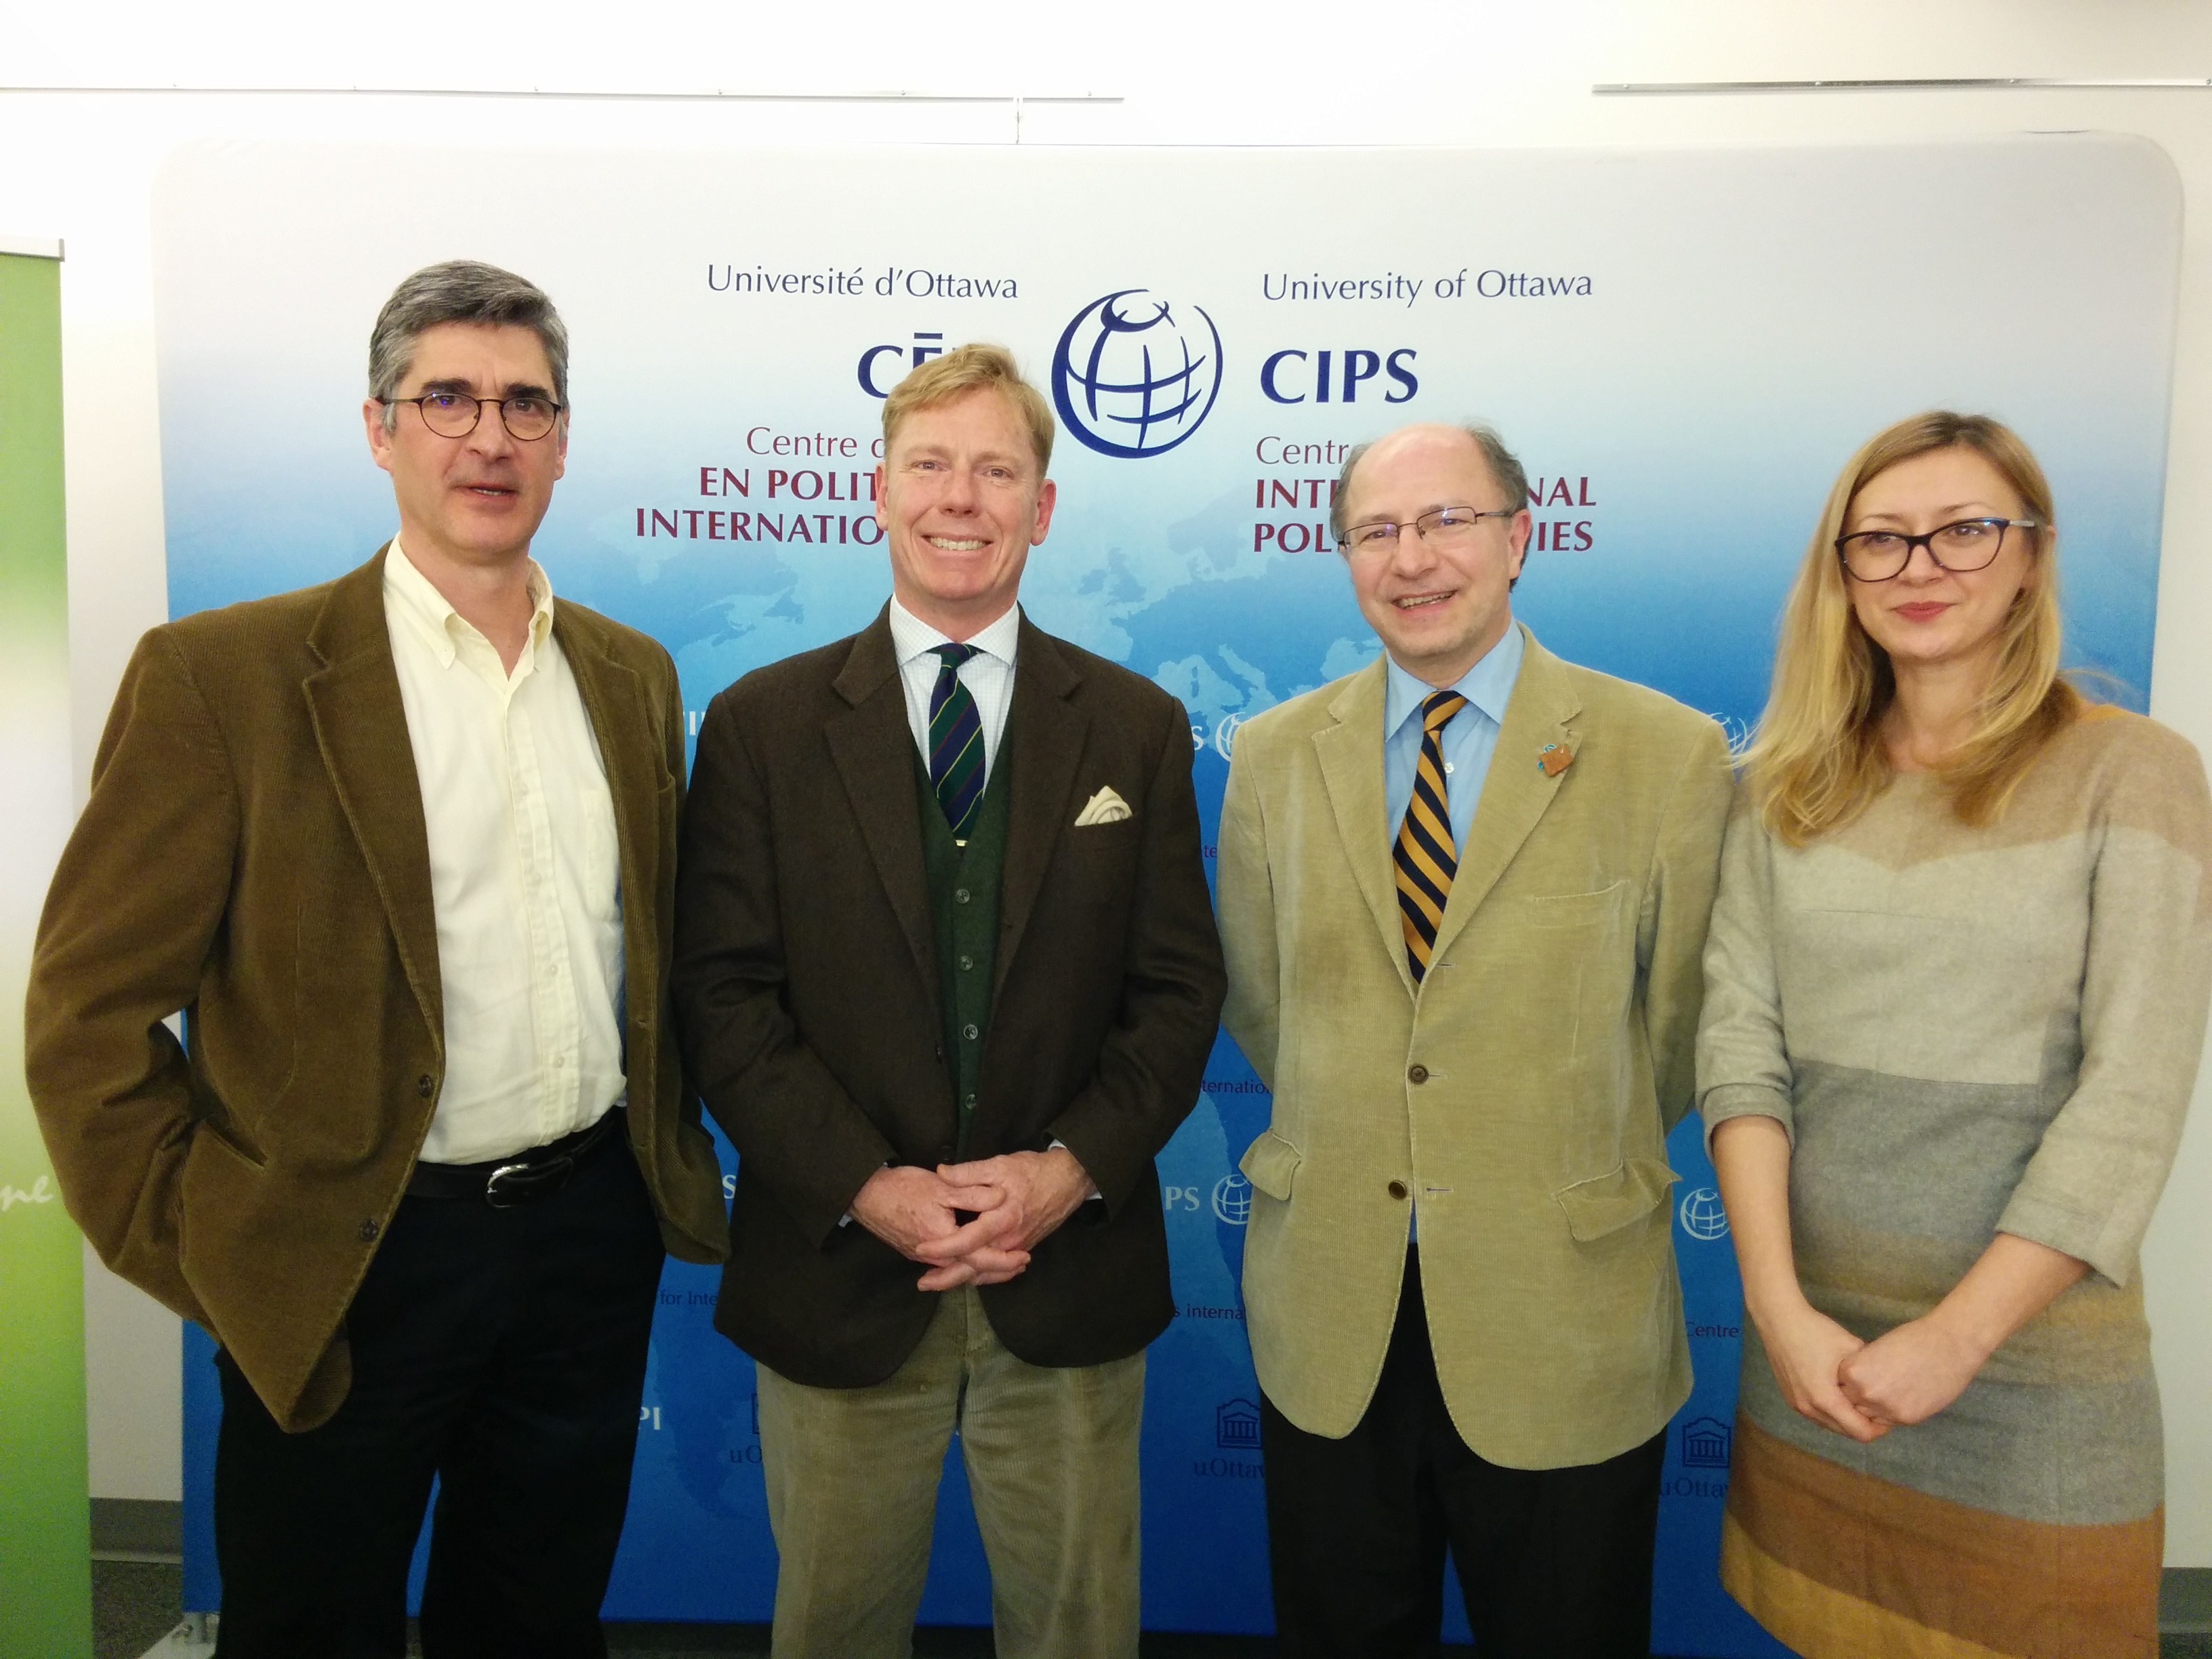 David Petrasek (CIPS), William Wiley & Nerma Jelacic (Commission for International Justice and Accountability - CIJA) and John Packer - MARCH 2016